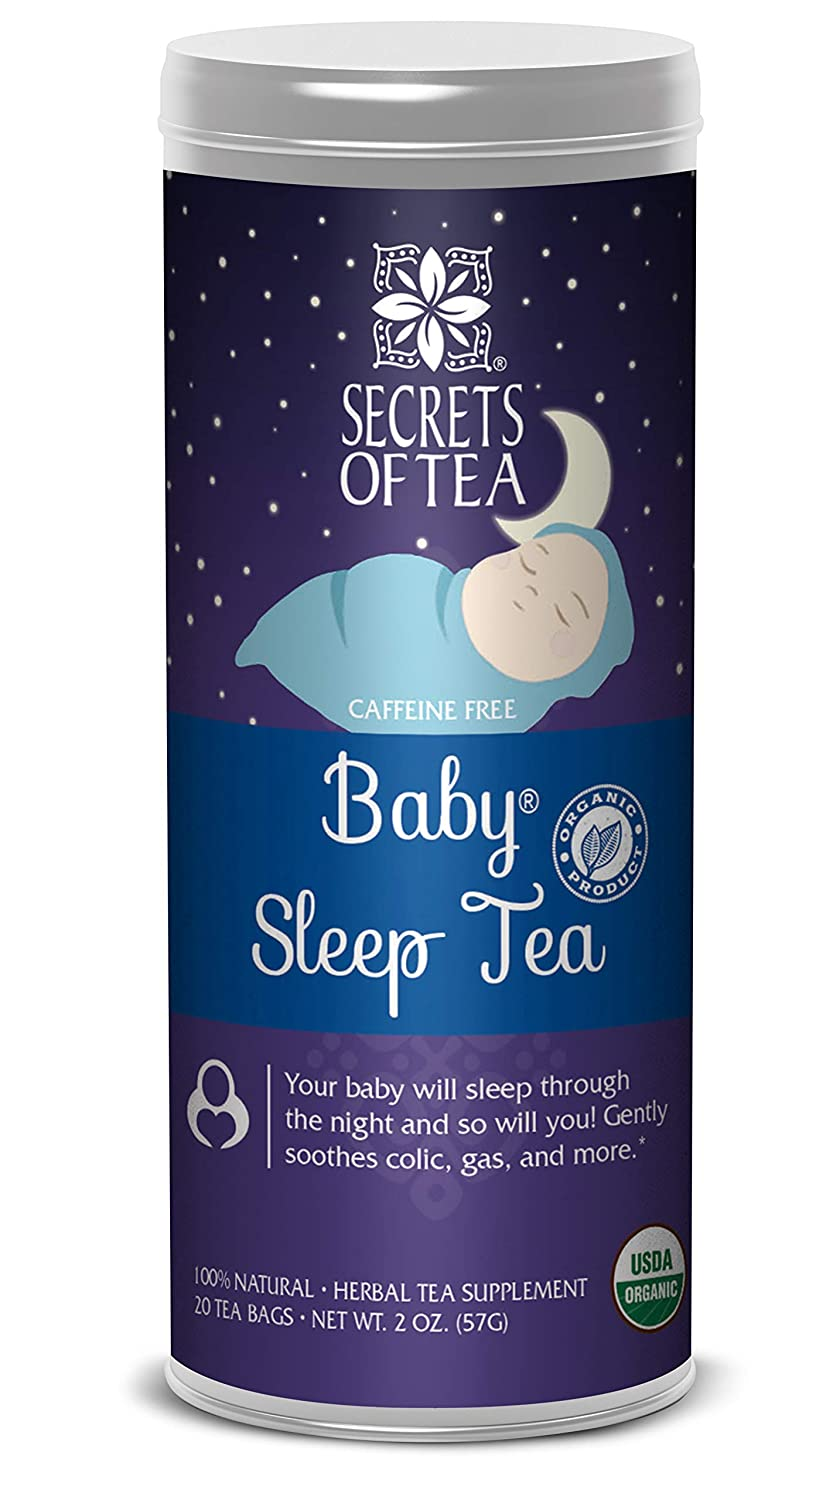 Baby Sleep Tea – Digestive & Colic Prevention Herbal Tea – Soothes Acid Reflux & Newborn Tummy Digestion – Calming, Safe & Healthy Colic Relief Tea – Promotes Better Sleep – 20 Count Secrets of Tea 850302006251